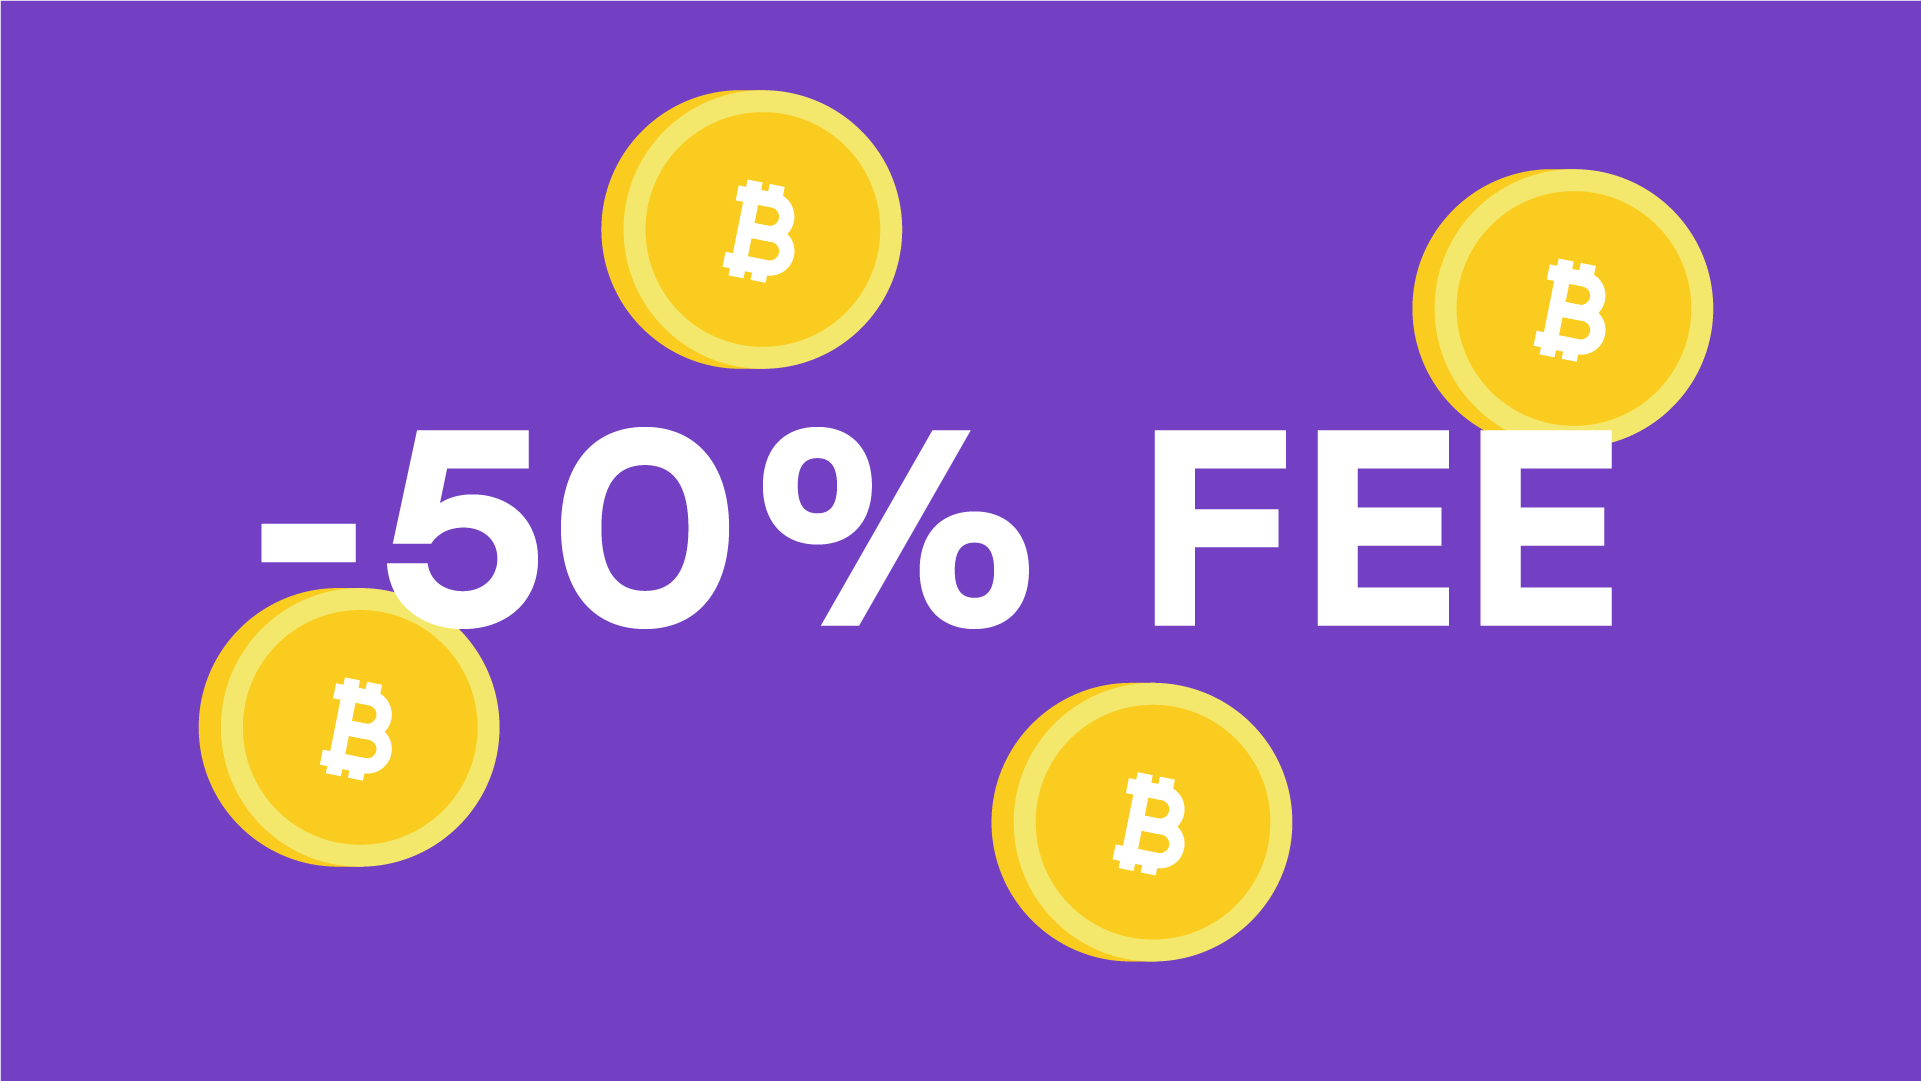 Bitcoin is yours with a 50% discount on fees